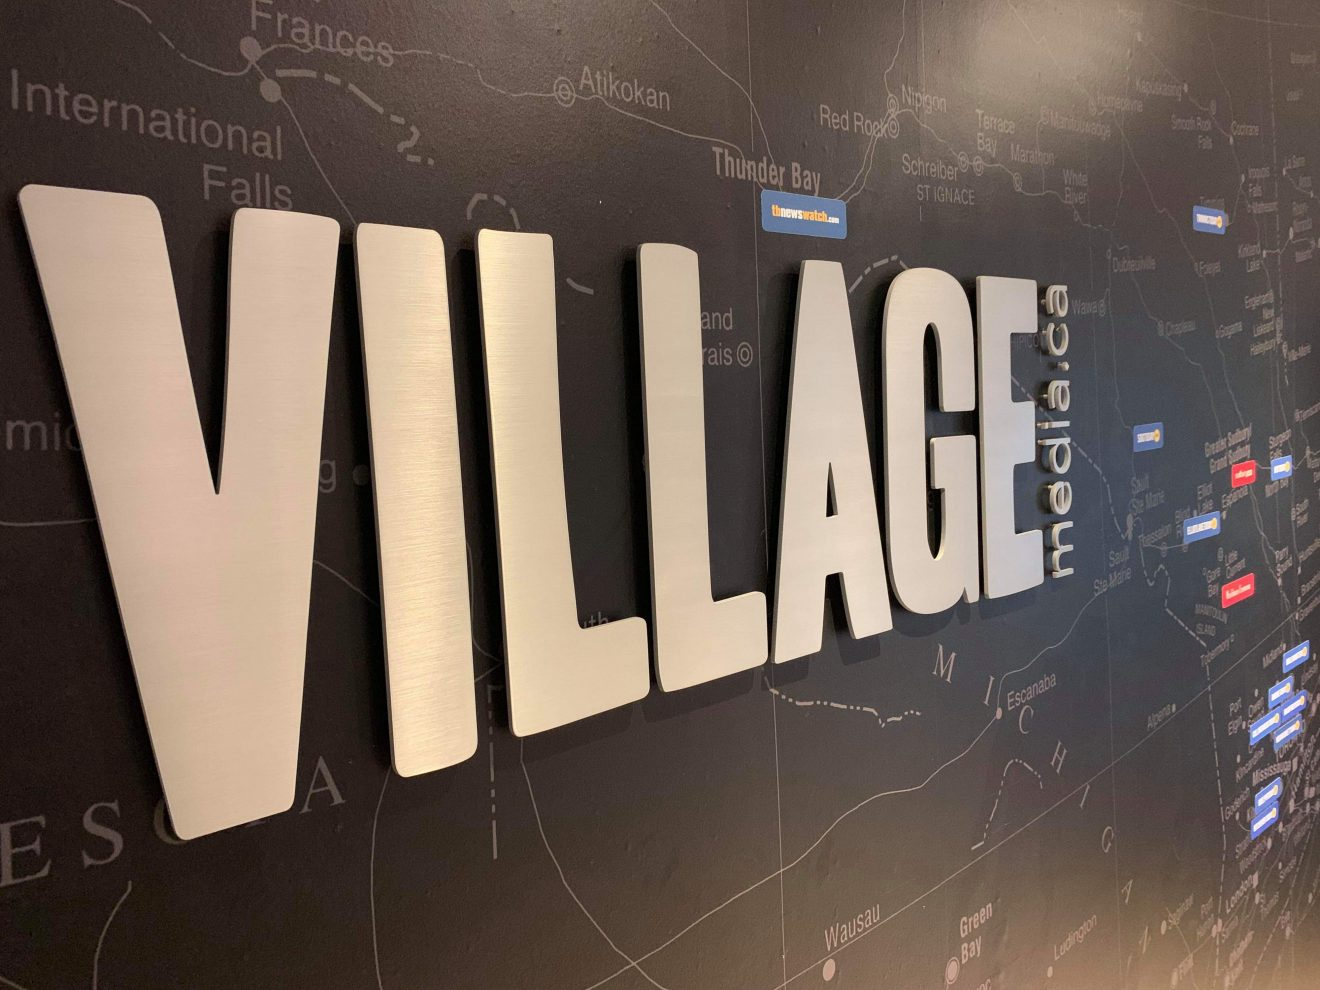 Village Media selected to power major U.S. local news experiment